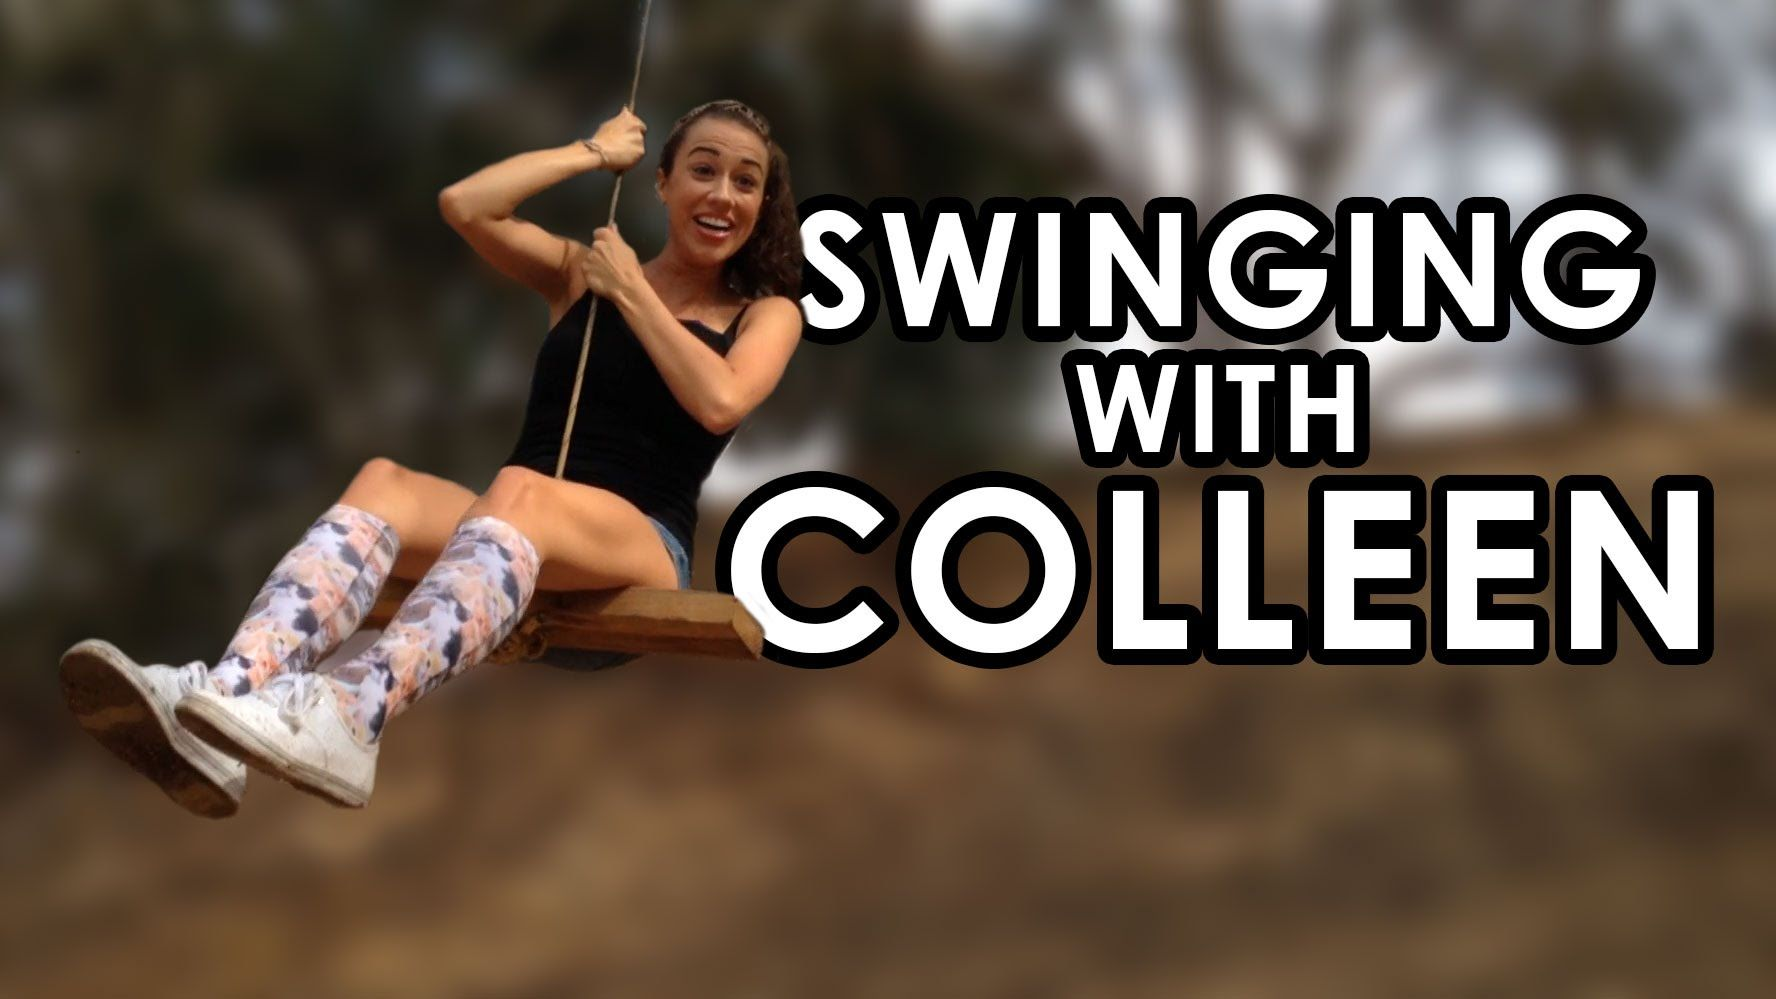 Swinging with Colleen